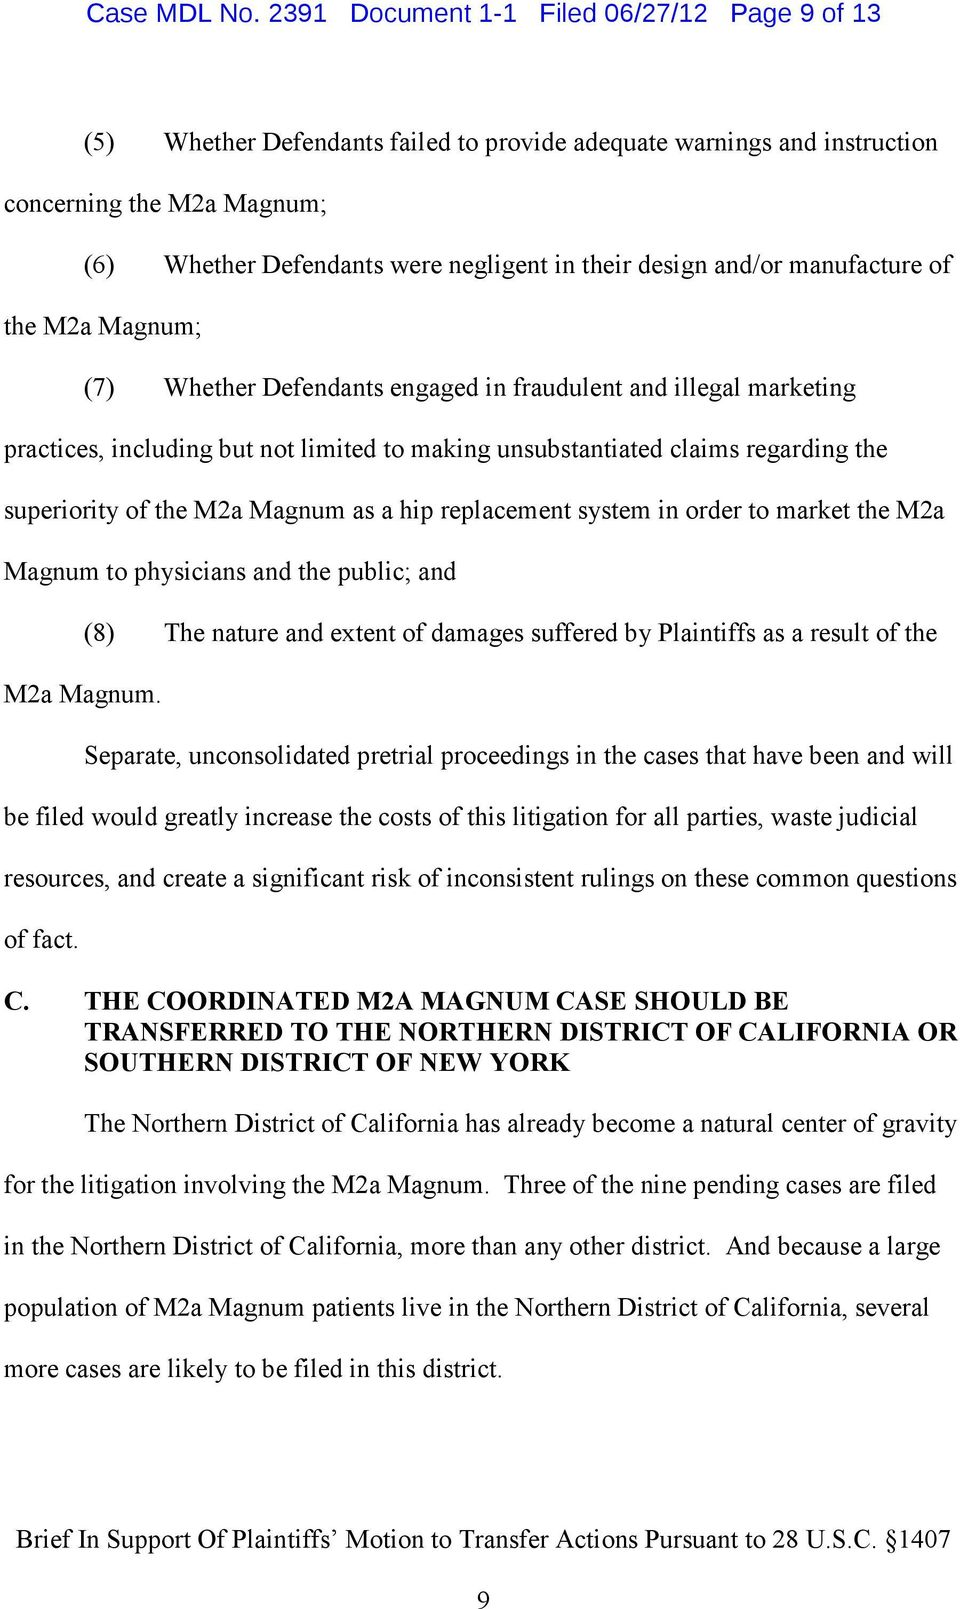 design and/or manufacture of the M2a Magnum; (7) Whether Defendants engaged in fraudulent and illegal marketing practices, including but not limited to making unsubstantiated claims regarding the